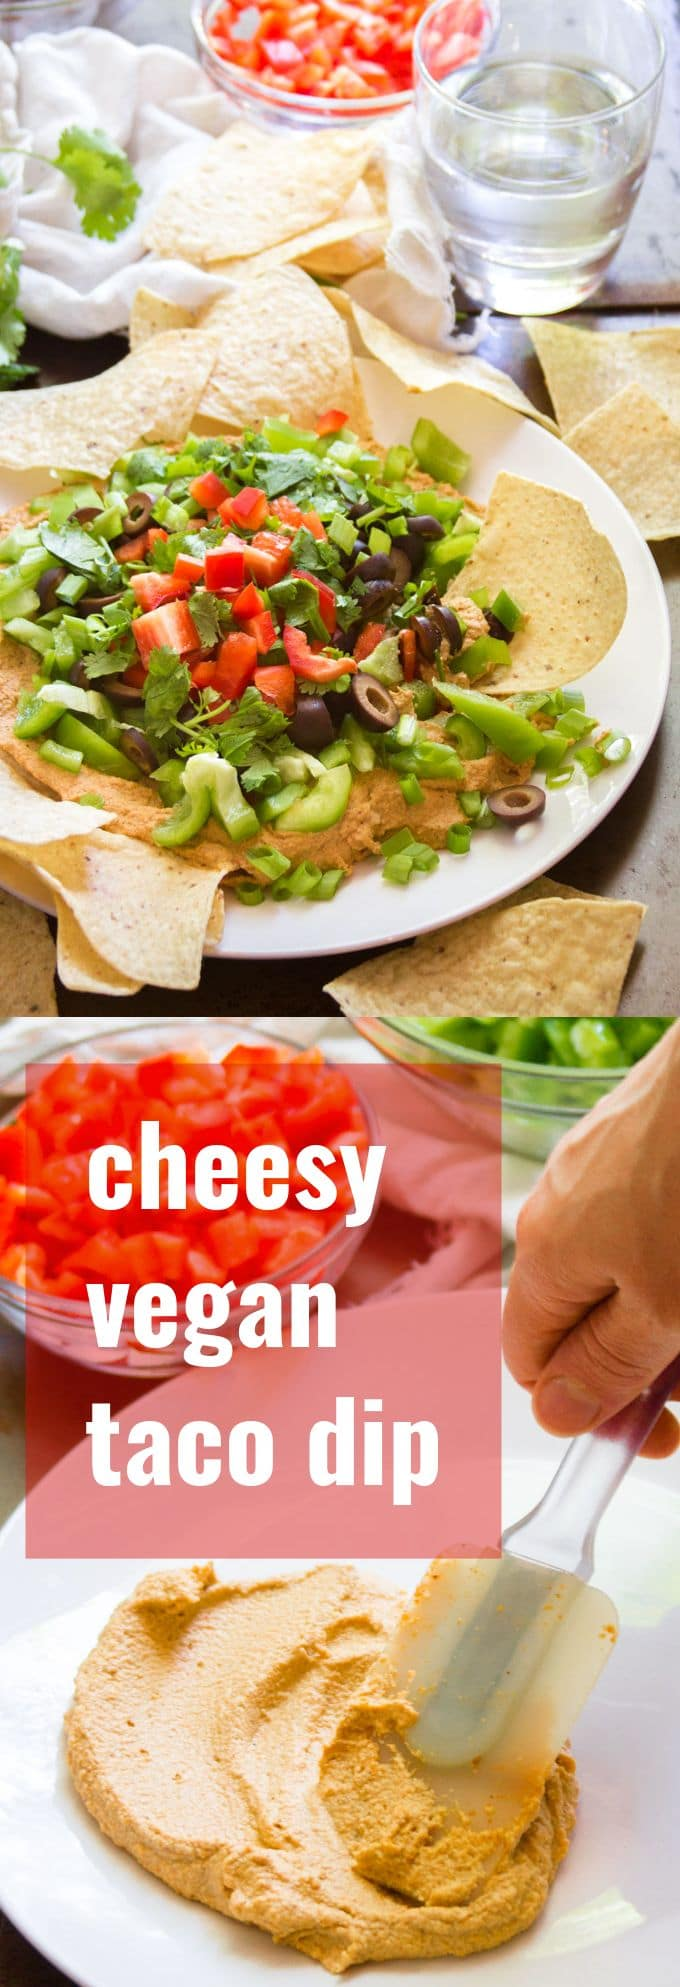 Cheesy Vegan Taco Dip